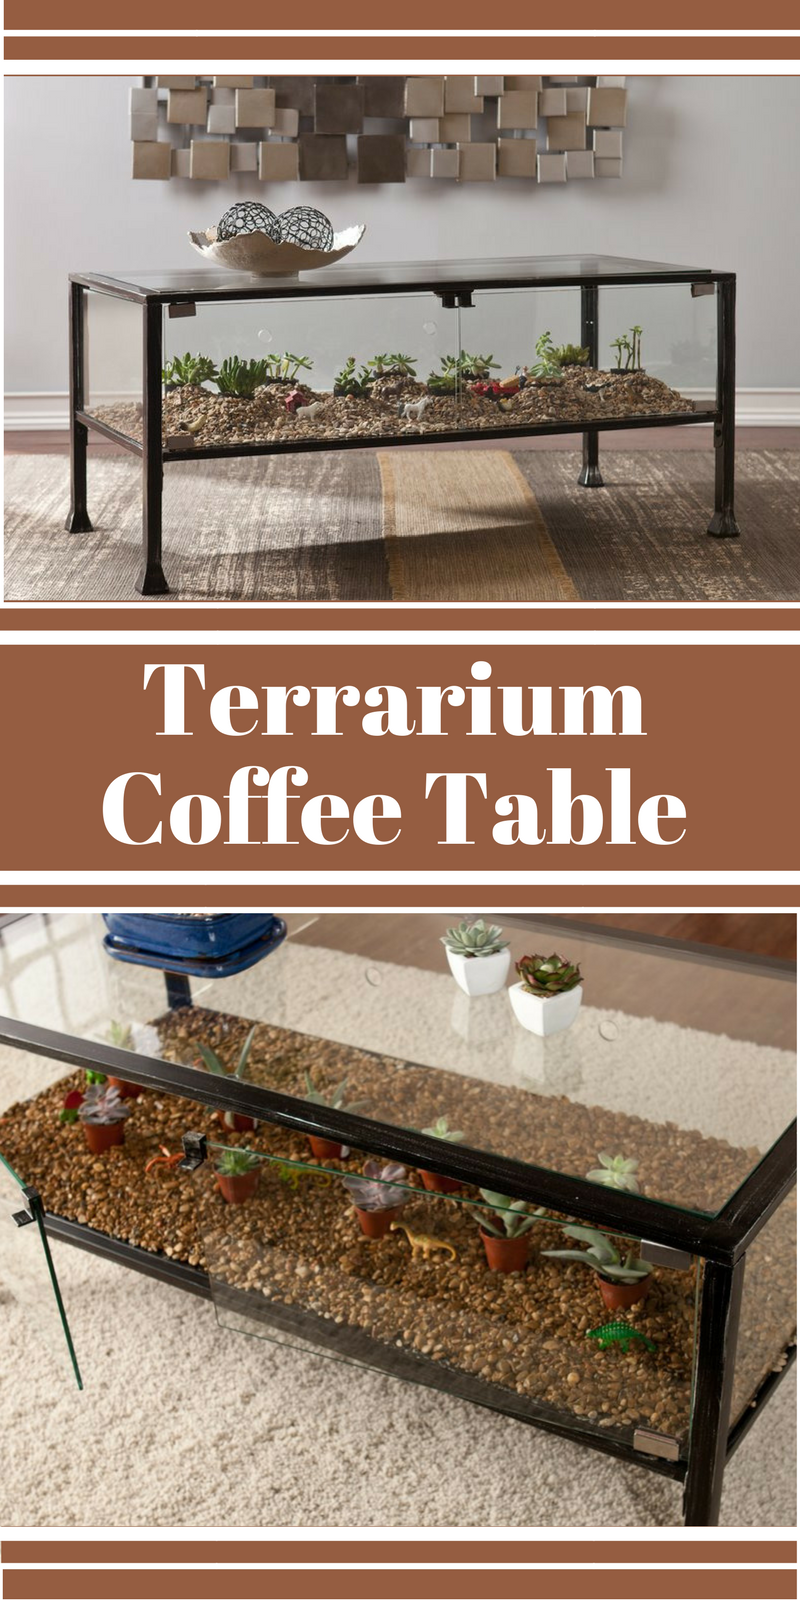 terrarium coffee table perfect for displaying succulents